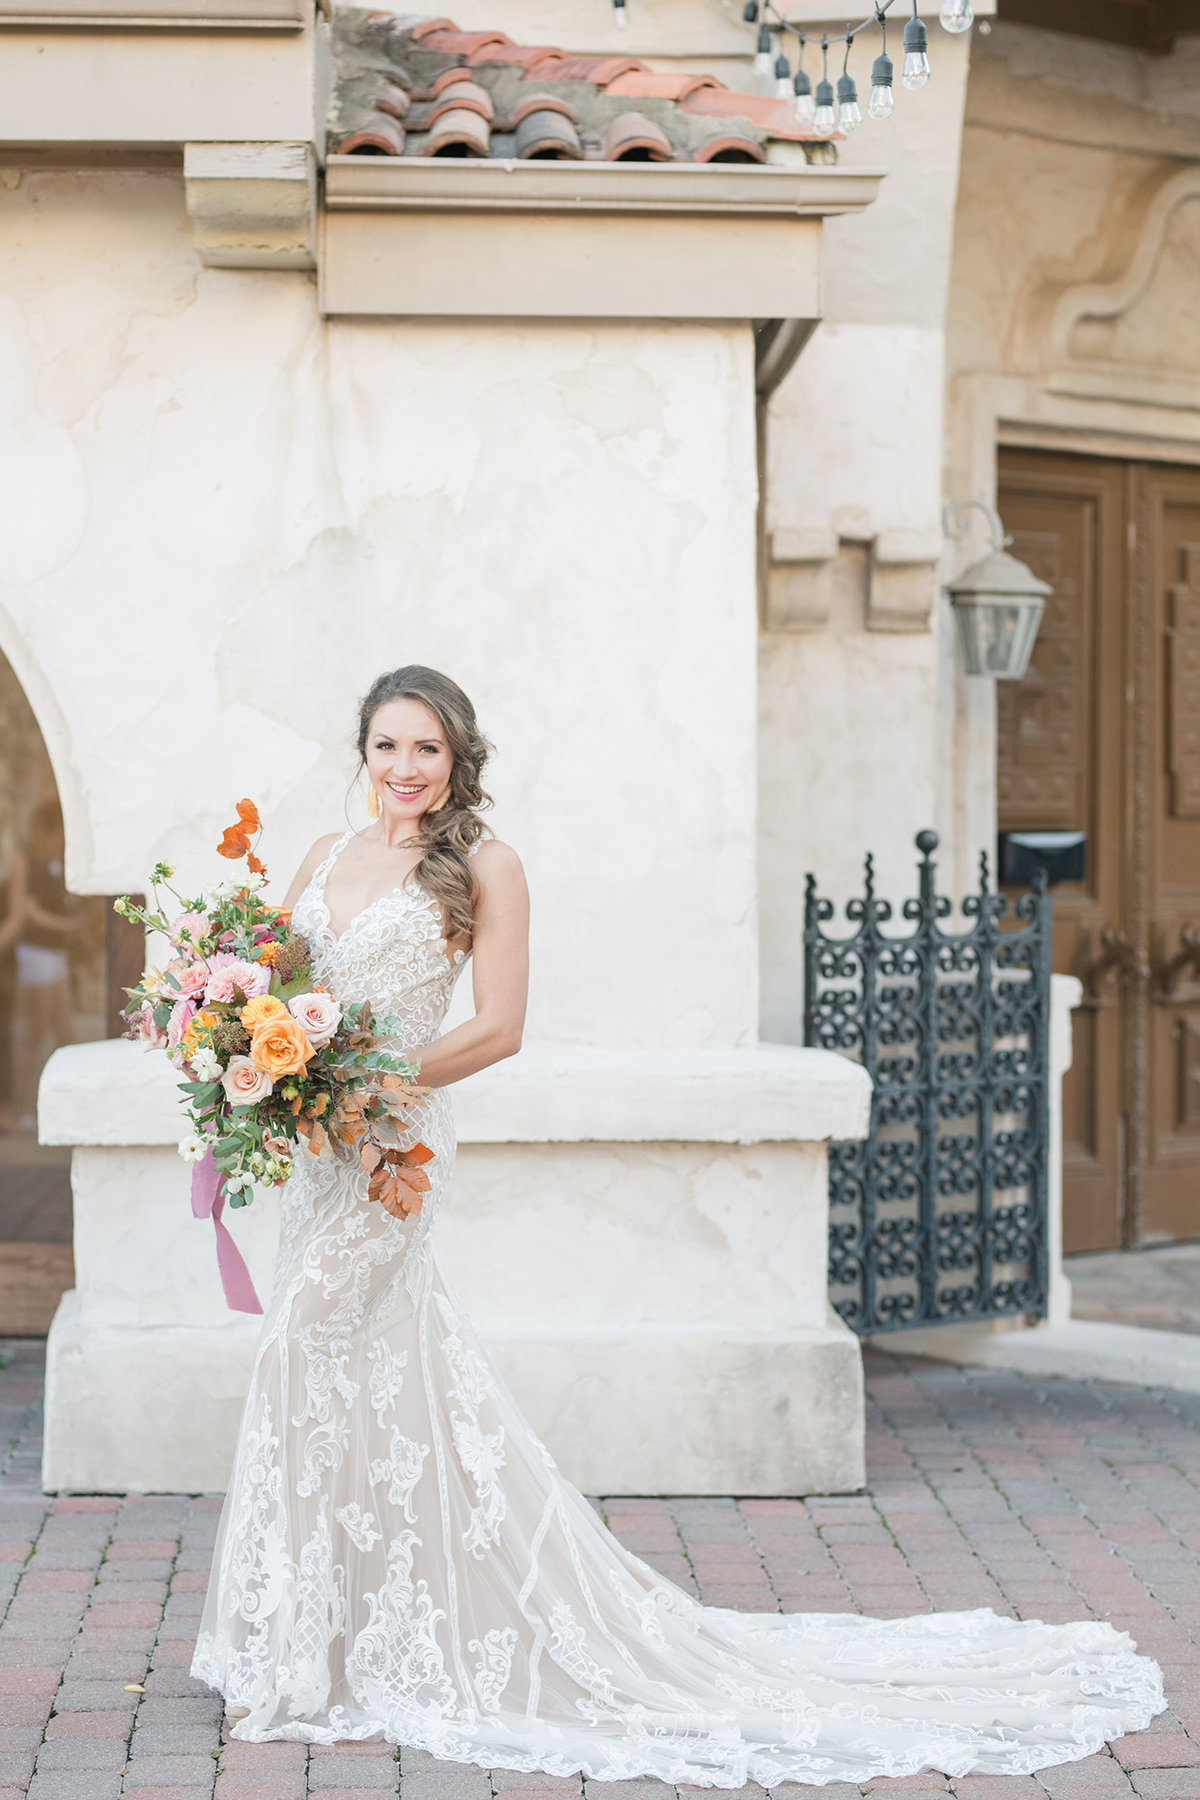 Bridal holds fall wedding bouquet at Bridal Portraits at Villa Antonia in Austin